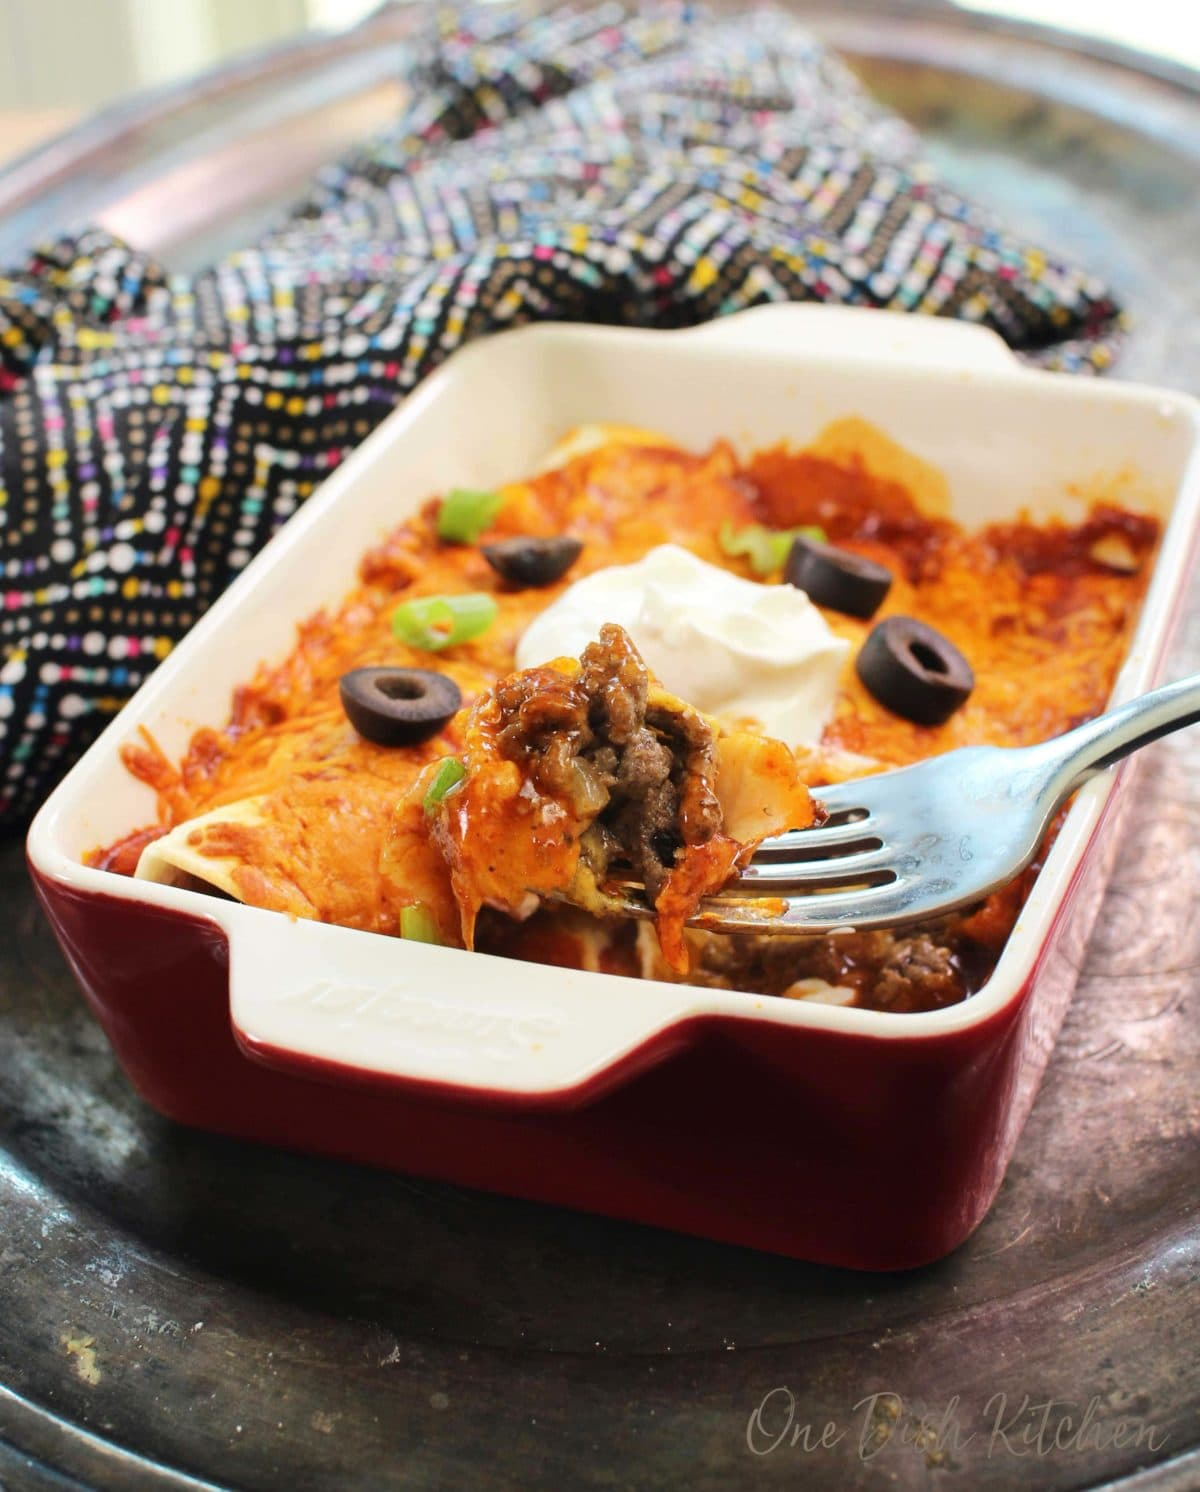 two beef enchiladas in a red dish with a fork on the side of the dish filled with ground beef.